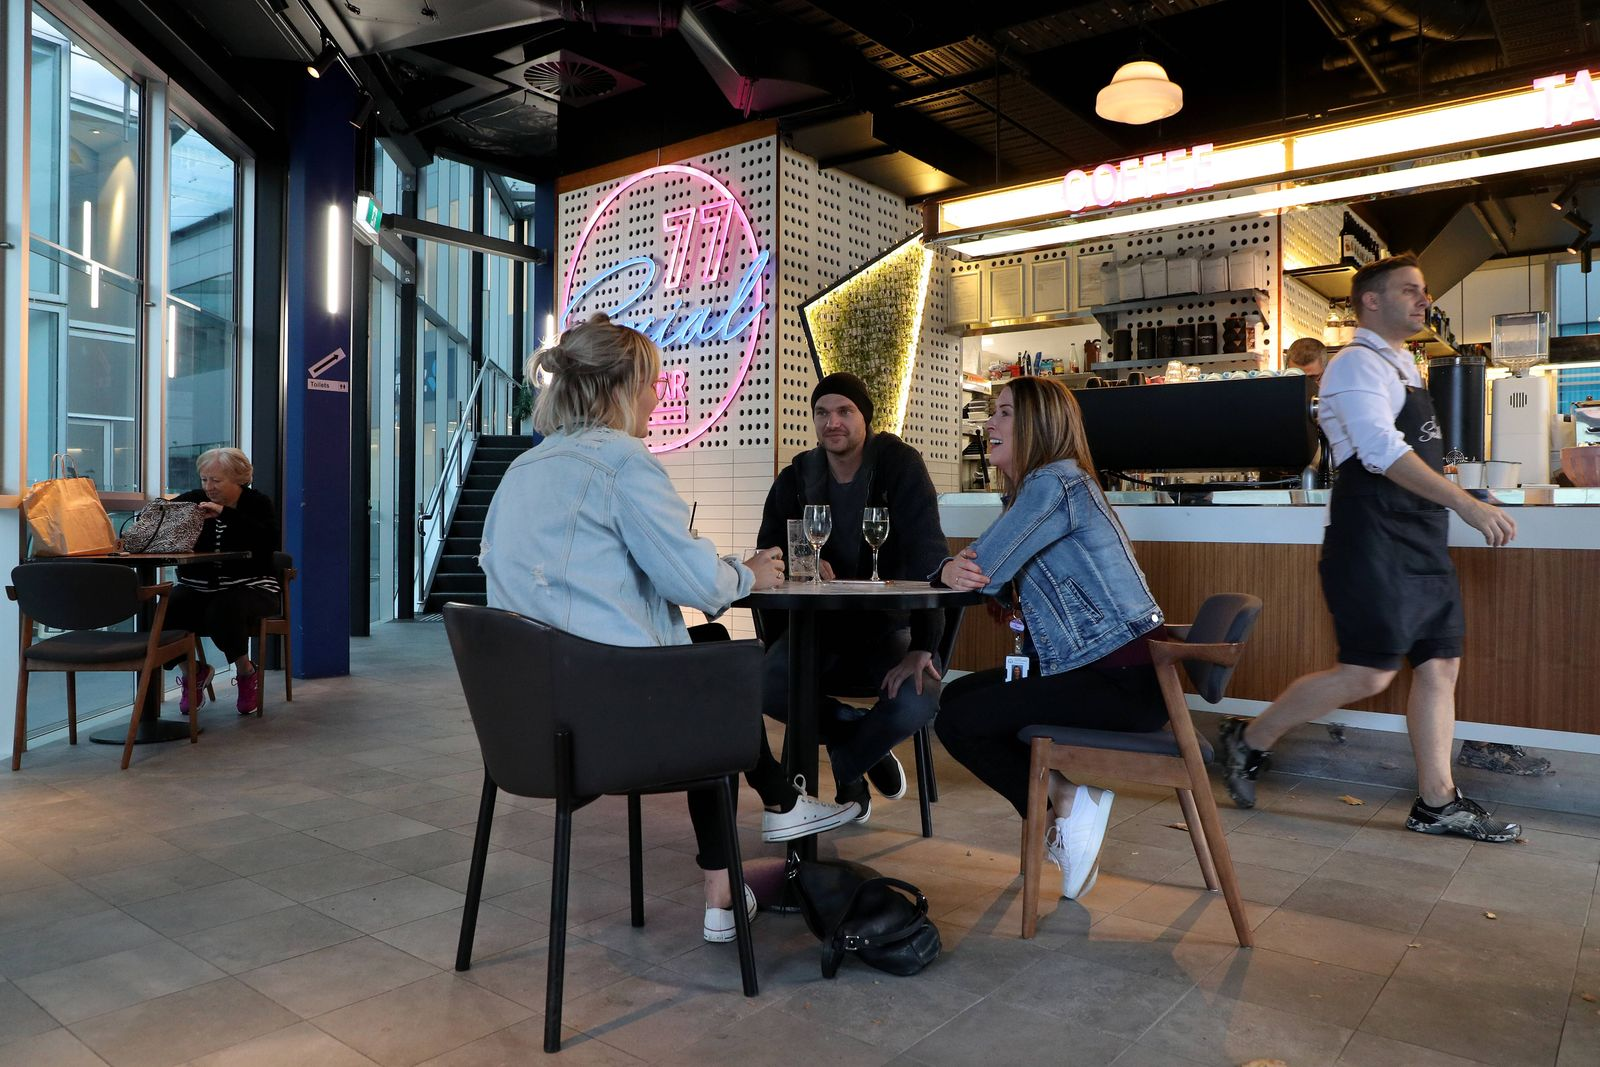 COVID-19 RESTRICTIONS EASED WA, Cafe goers are seen sitting in socially distanced tables in Perth, Monday, May 18, 2020